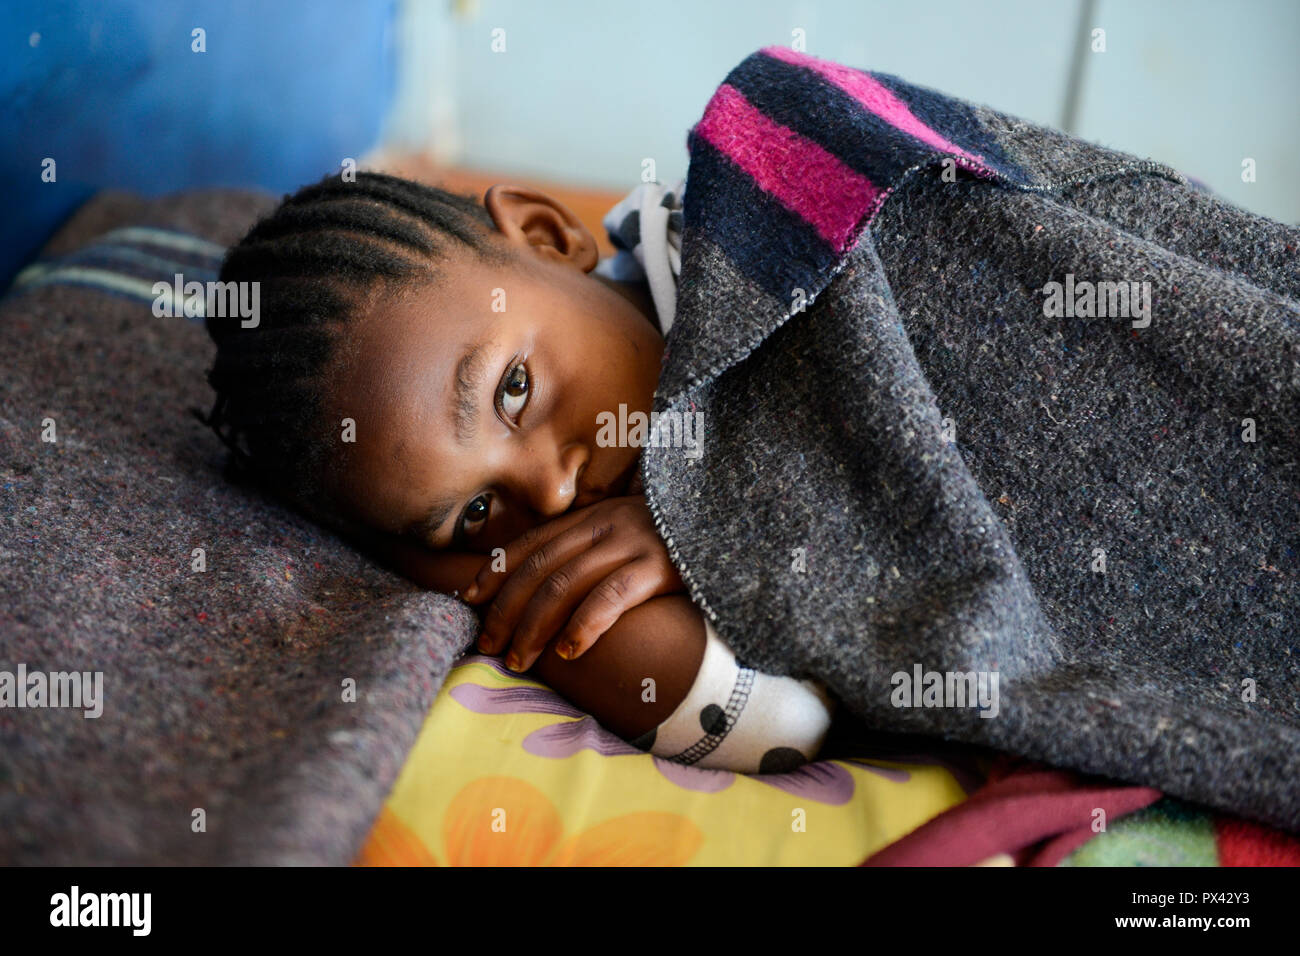 TANZANIA Mara, Tarime, village Masanga, region of the Kuria tribe who practise FGM Female Genital Mutilation, temporary rescue camp of the Diocese Musoma for girls which escaped from their villages to prevent FGM, children stay and sleep in school which is the temporary camp - Stock Image